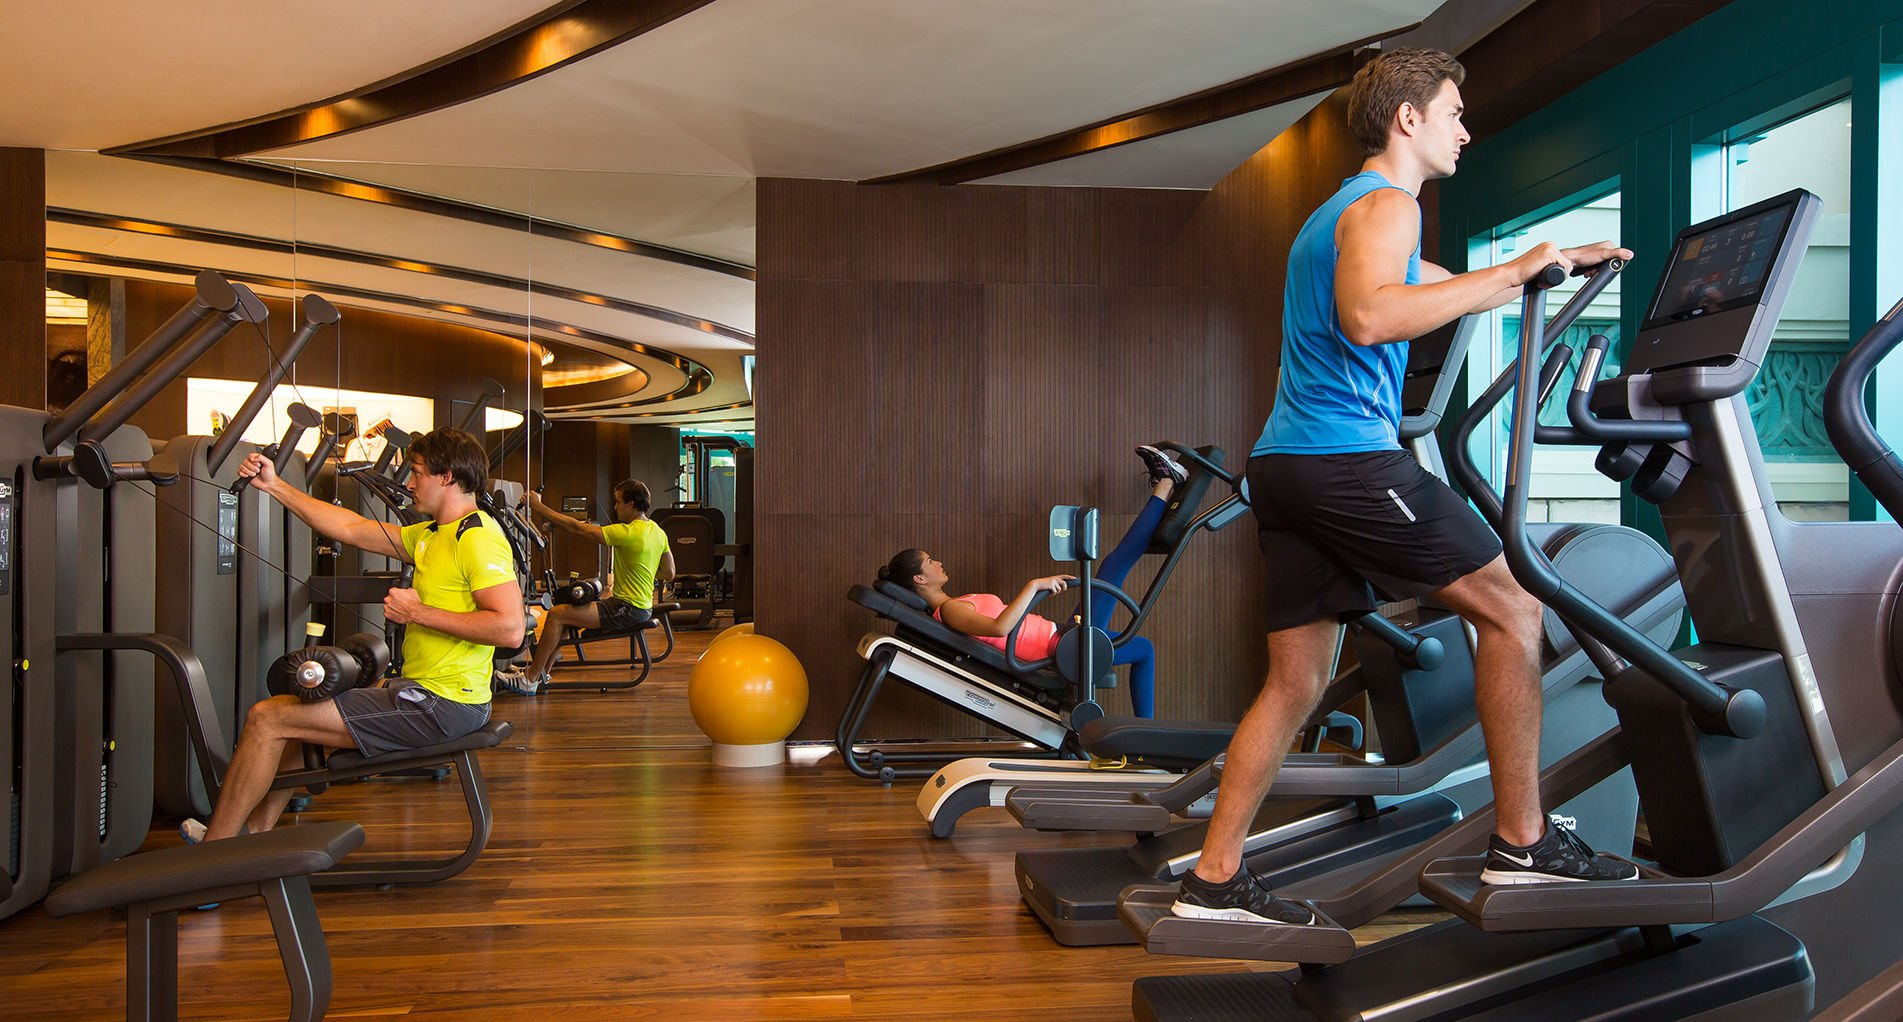 ShuiQi Fitness Centre presso Atlantis, The Palm Hotel & Resort – Dubai